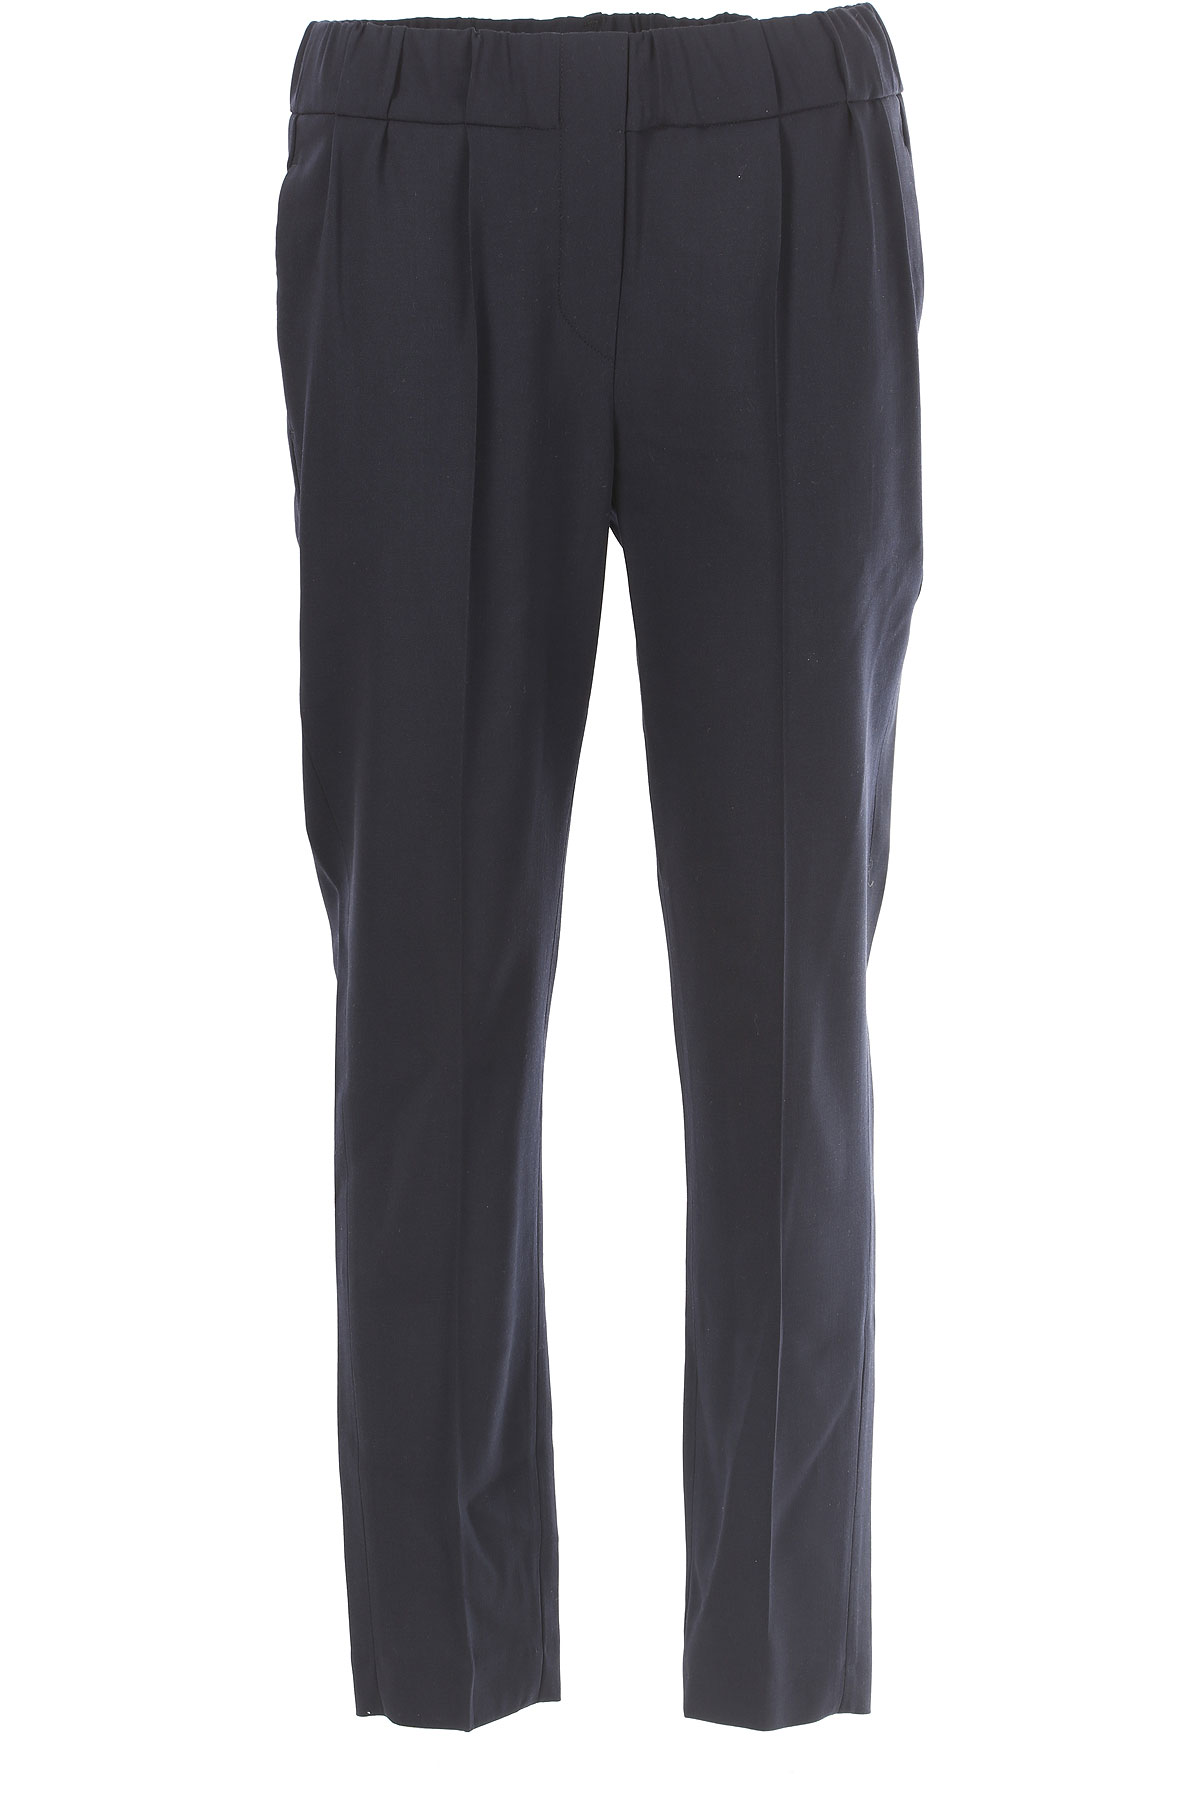 Brunello Cucinelli Pants for Women On Sale in Outlet, Bleu, Wool, 2019, 30 32